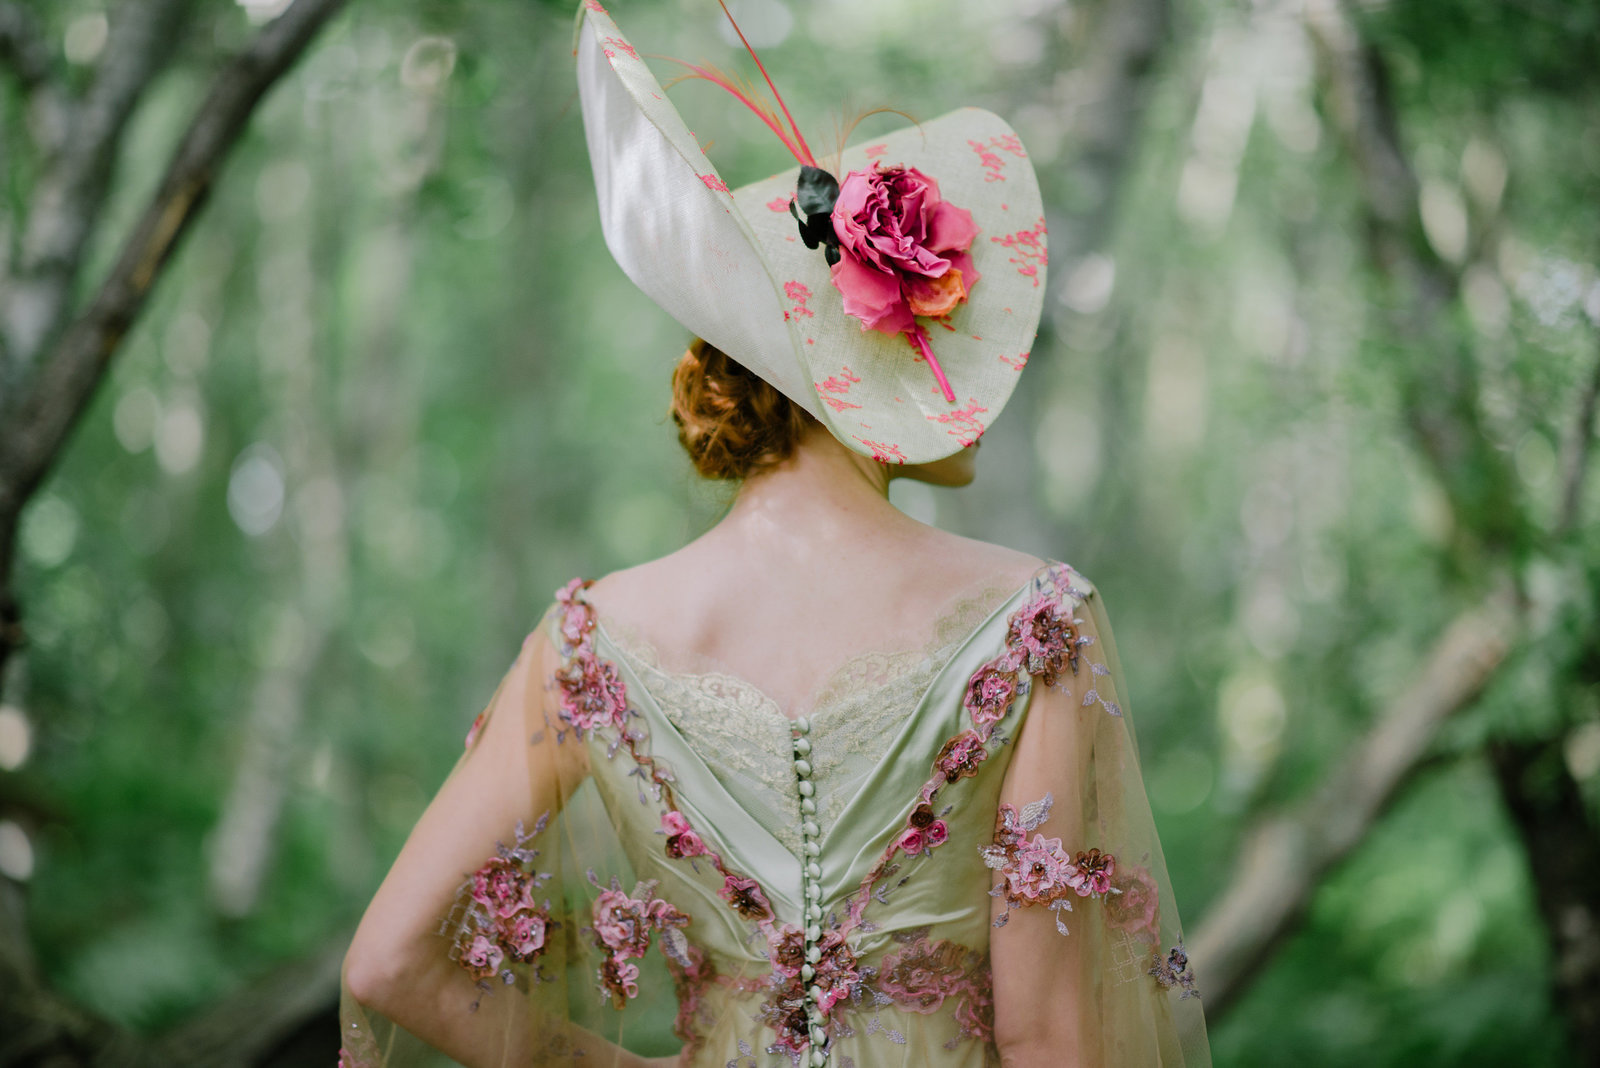 Gainsborough_belle_epoque_green_lilac_wedding_dress_JoanneFlemingDesign_JMS (10)web